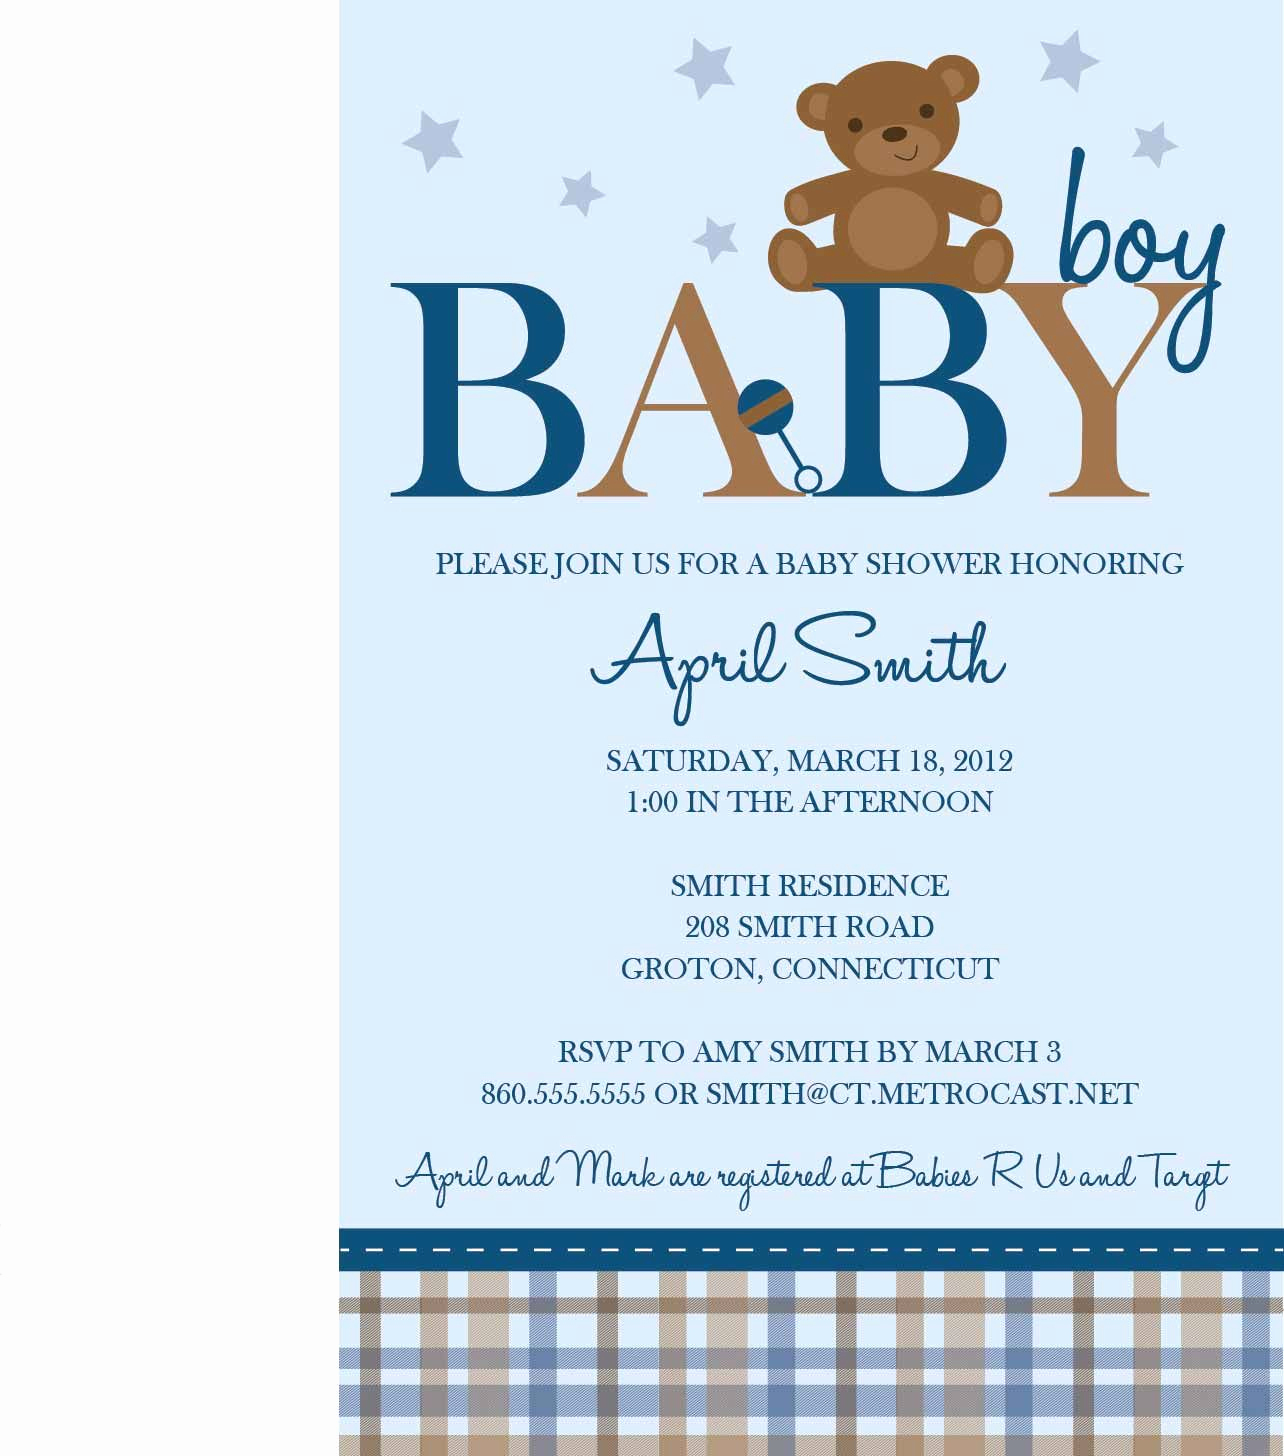 Baby Shower Invitation Examples New Teddy Bear Baby Shower Templates